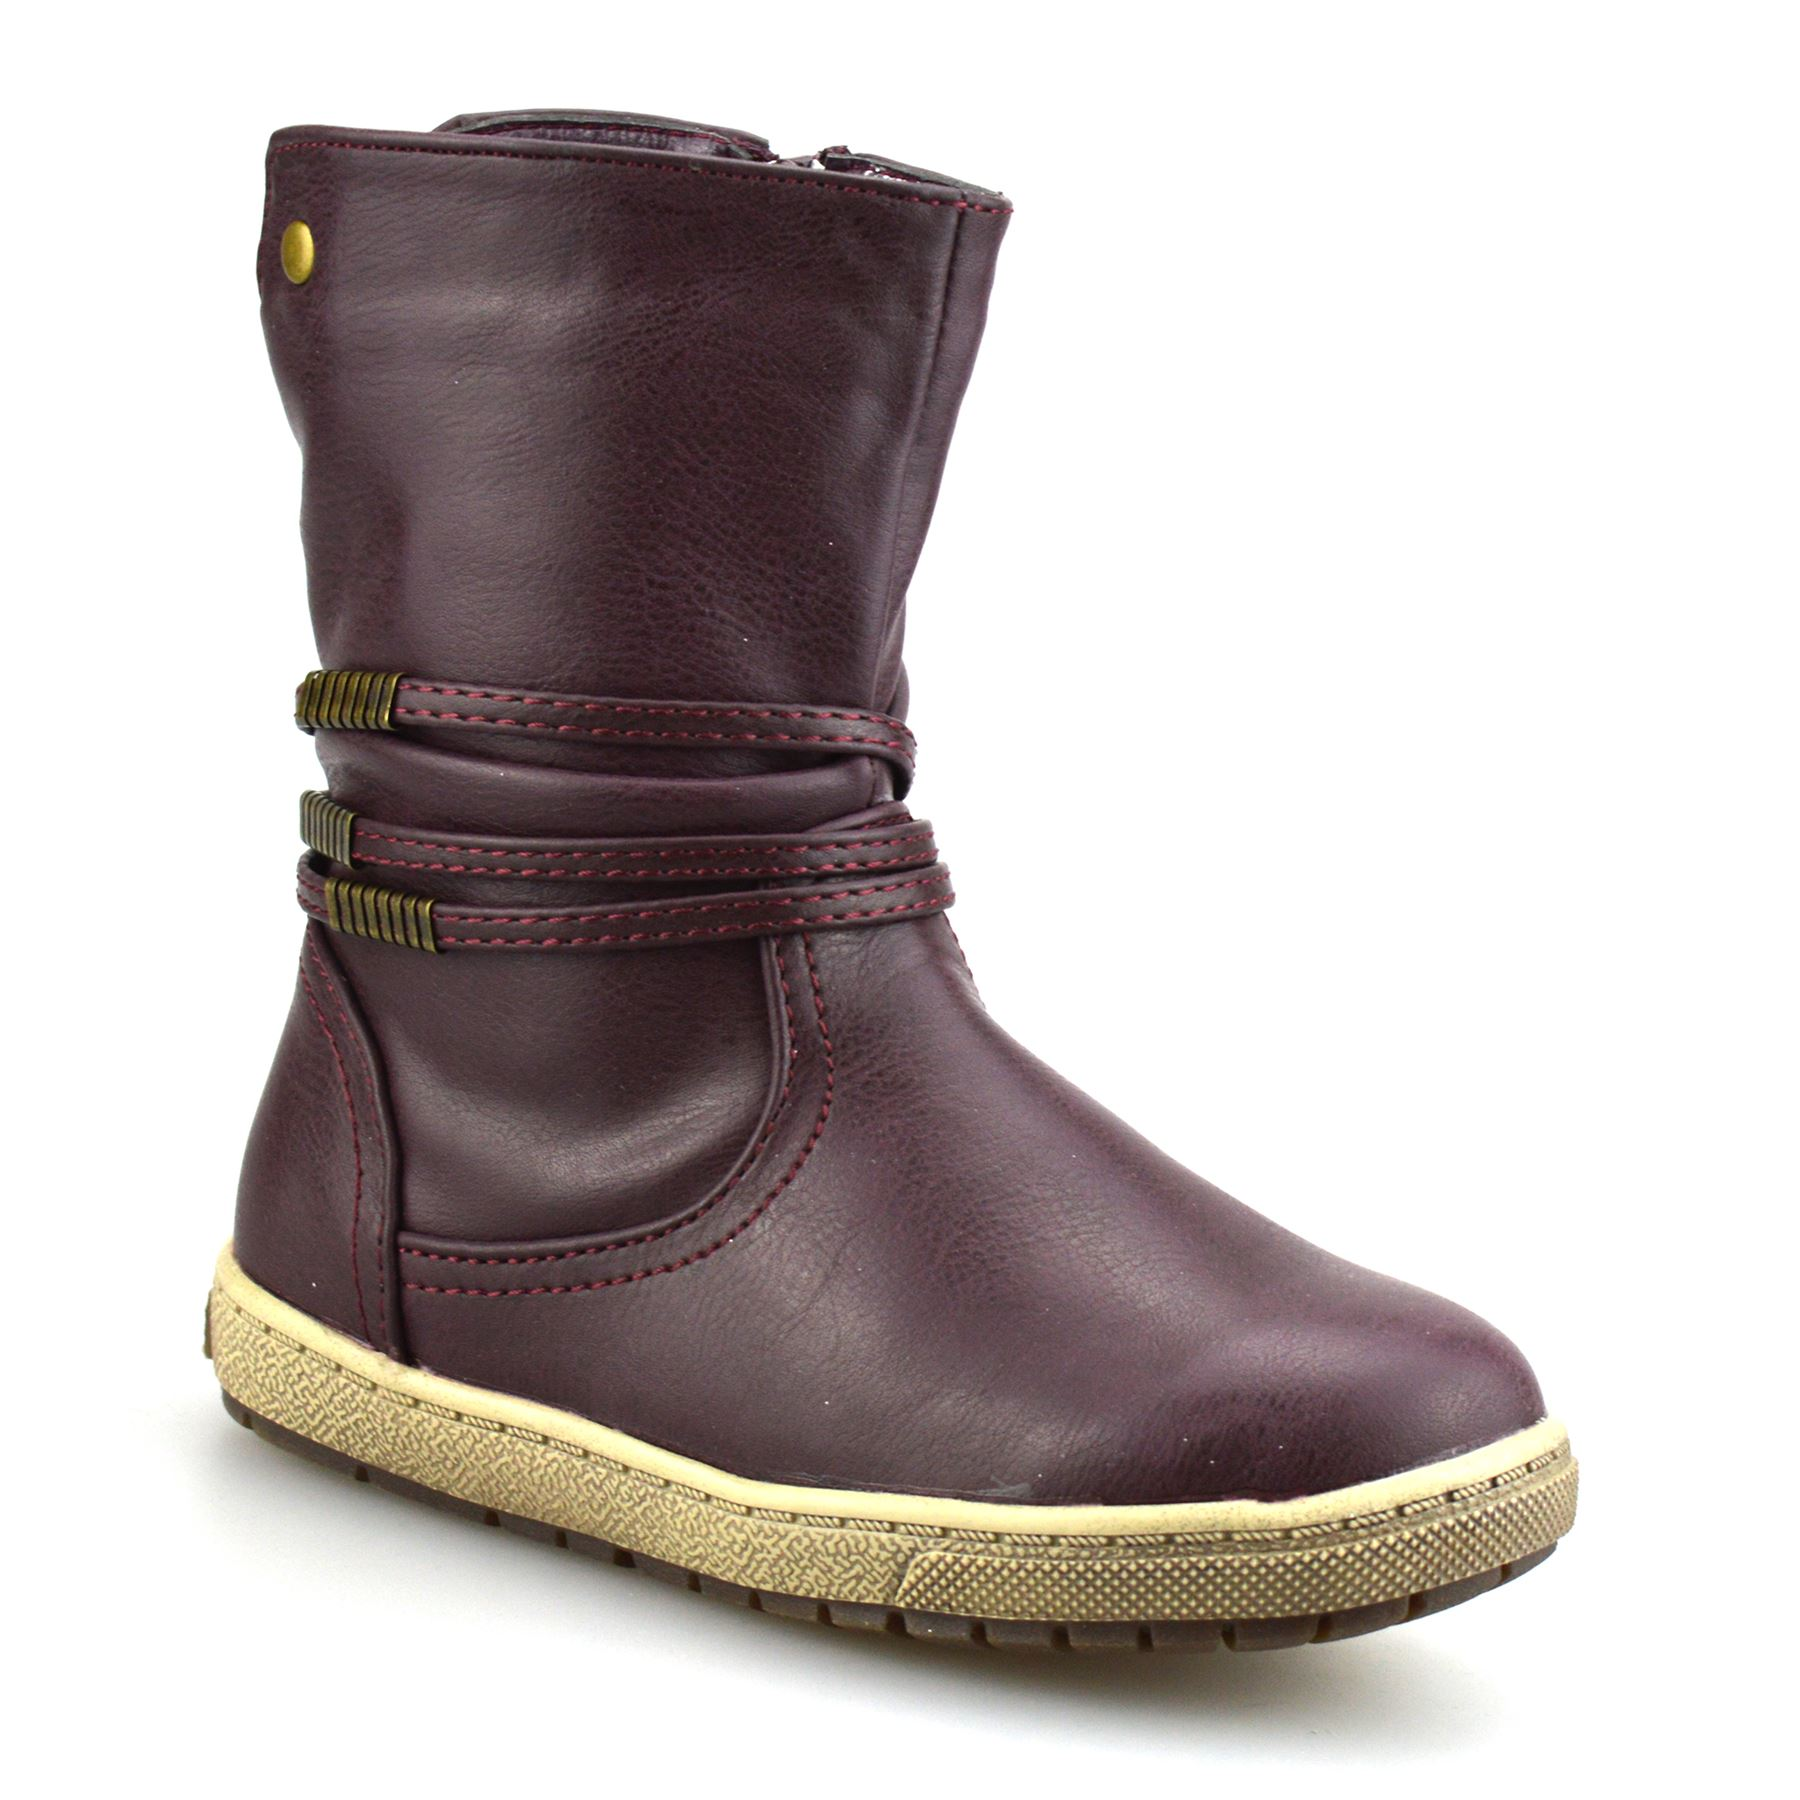 Girls Kids Childrens Infants Zip Up Biker Casual School Ankle Boots Shoes Size